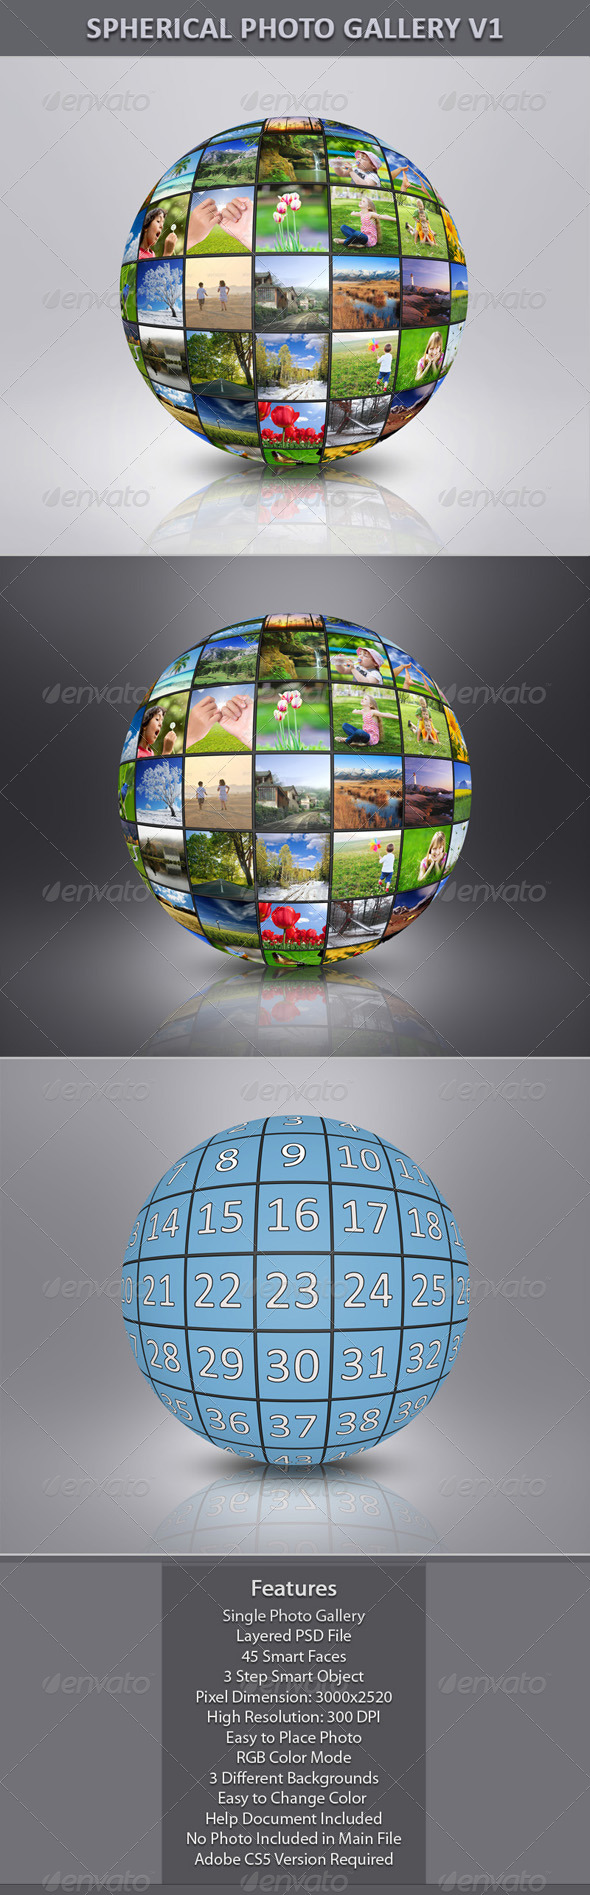 Spherical Photo Gallery V1 - Miscellaneous Photo Templates